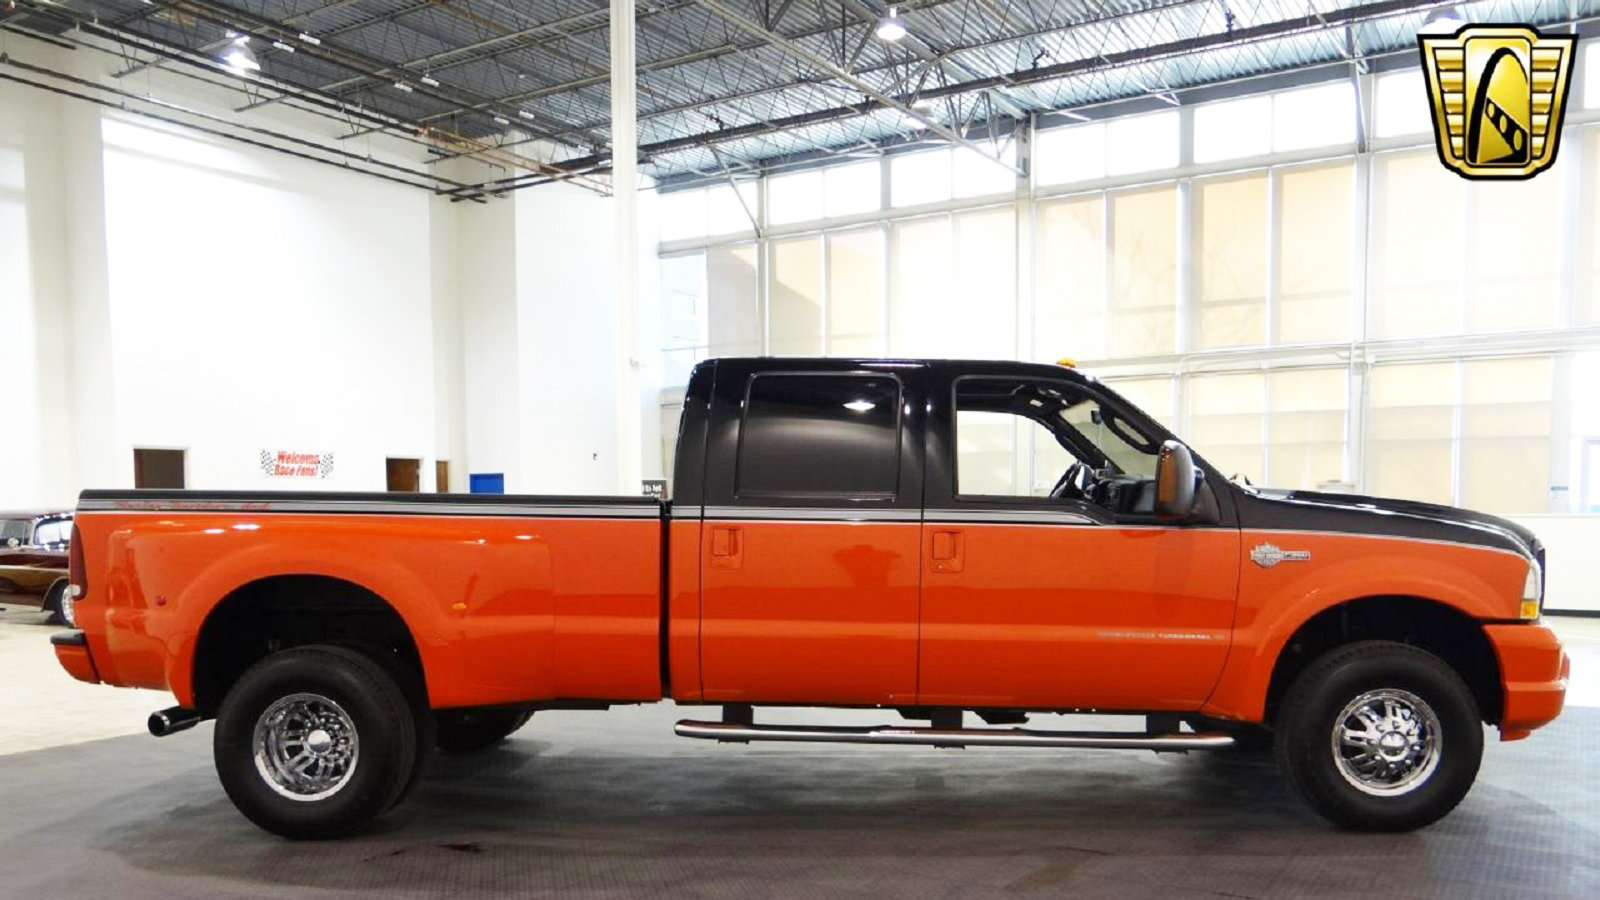 Ford F-350 Harley-Davidson Is Truly One of a Kind